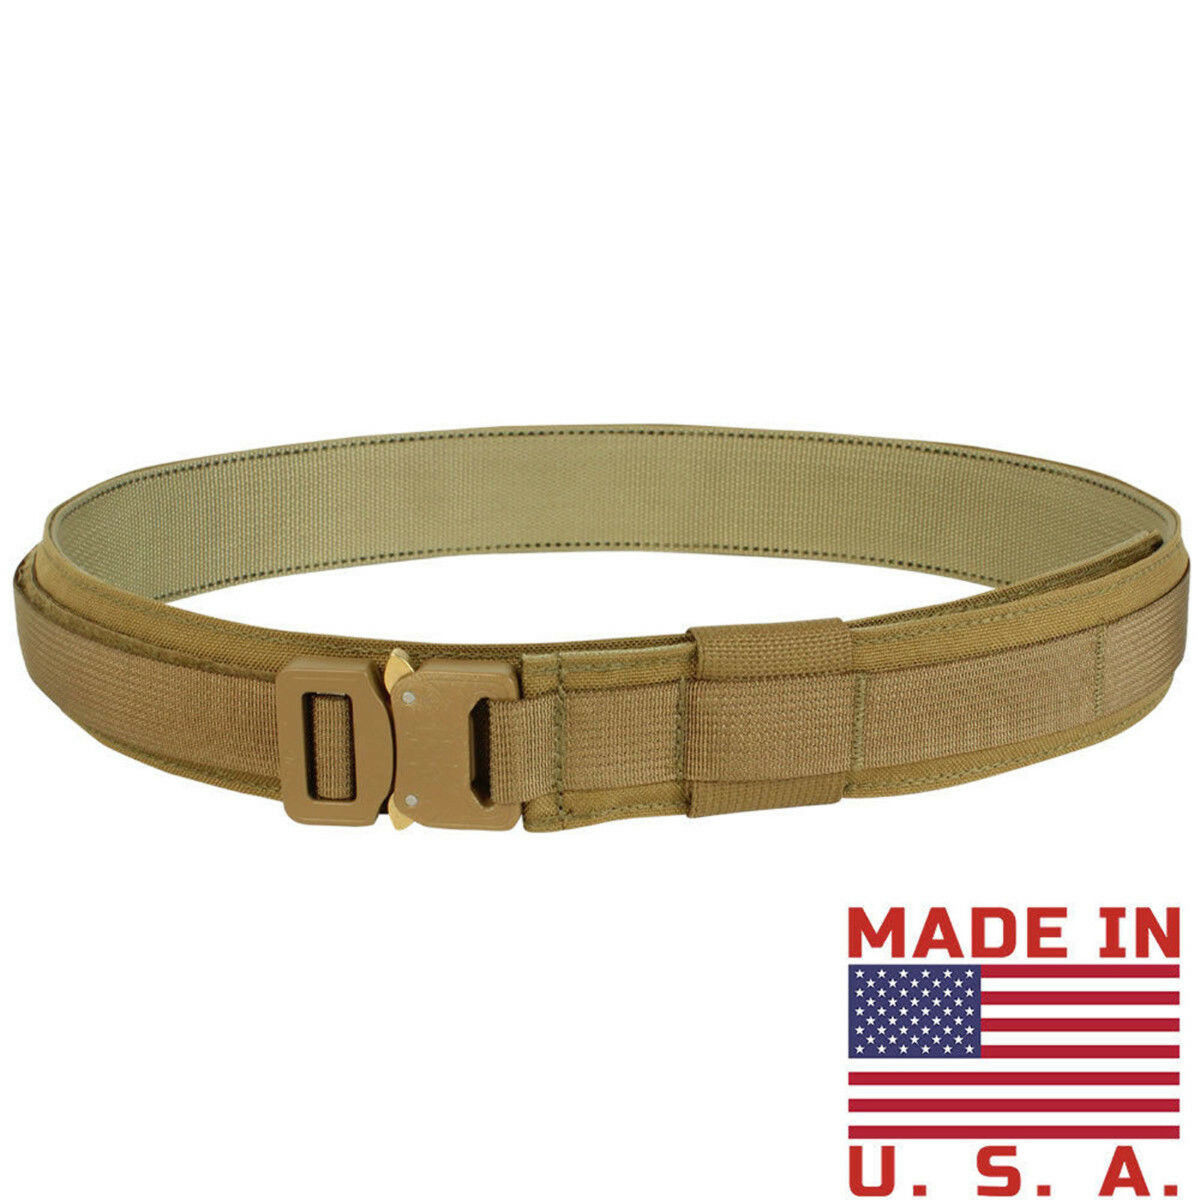 Condor Cobra Gun Belt - Coyote - Small - New - US1019-498-S